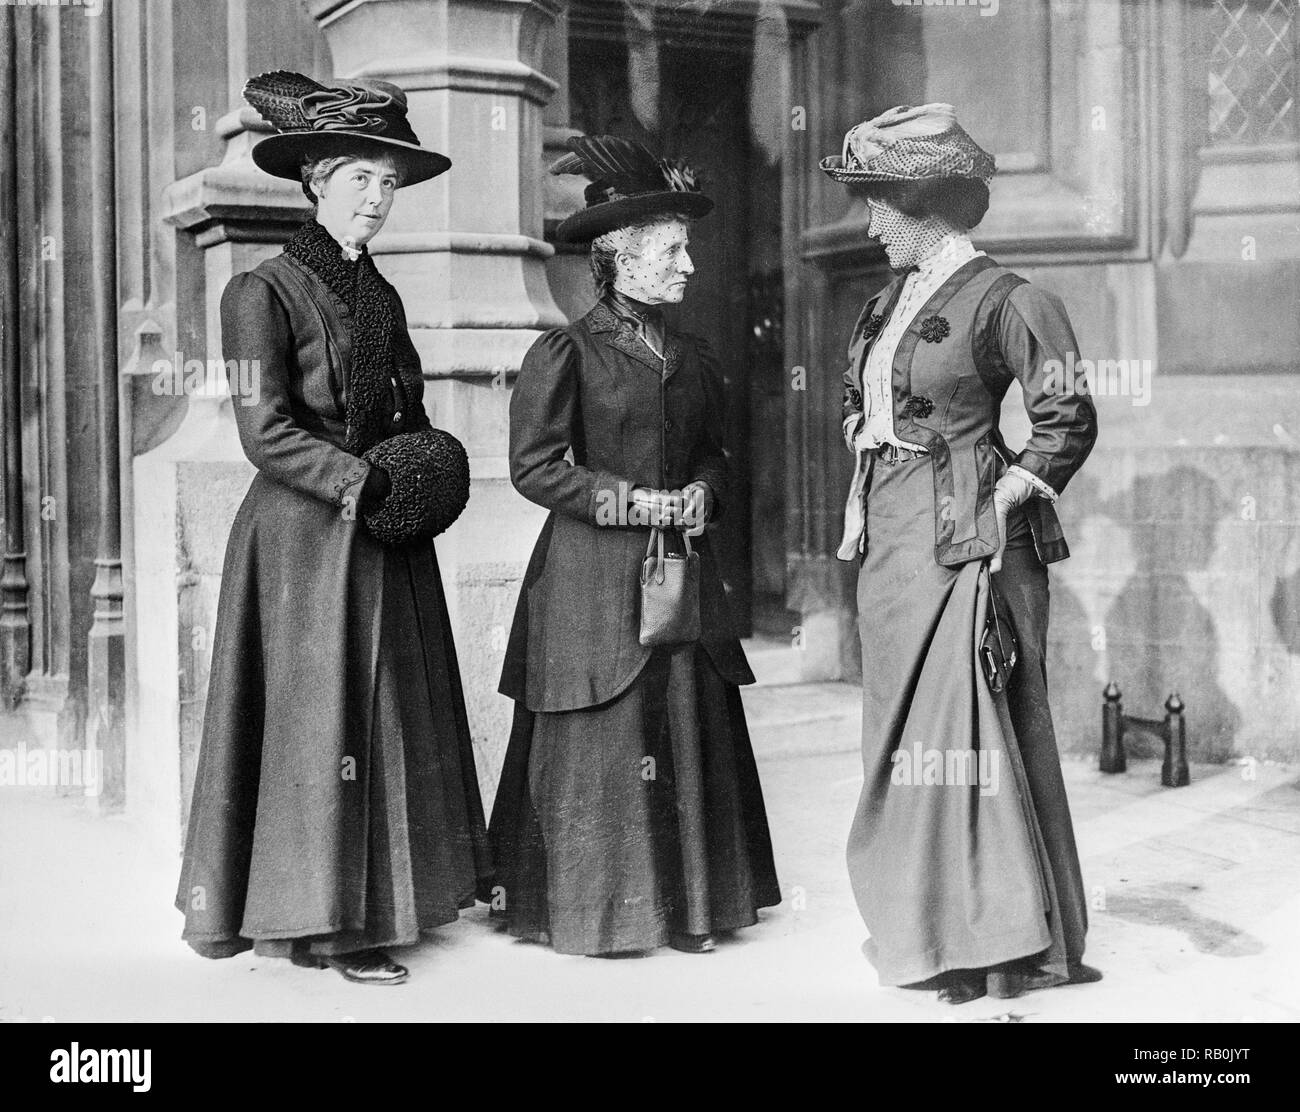 Three members of the women's suffragette movement in London around 1913. - Stock Image